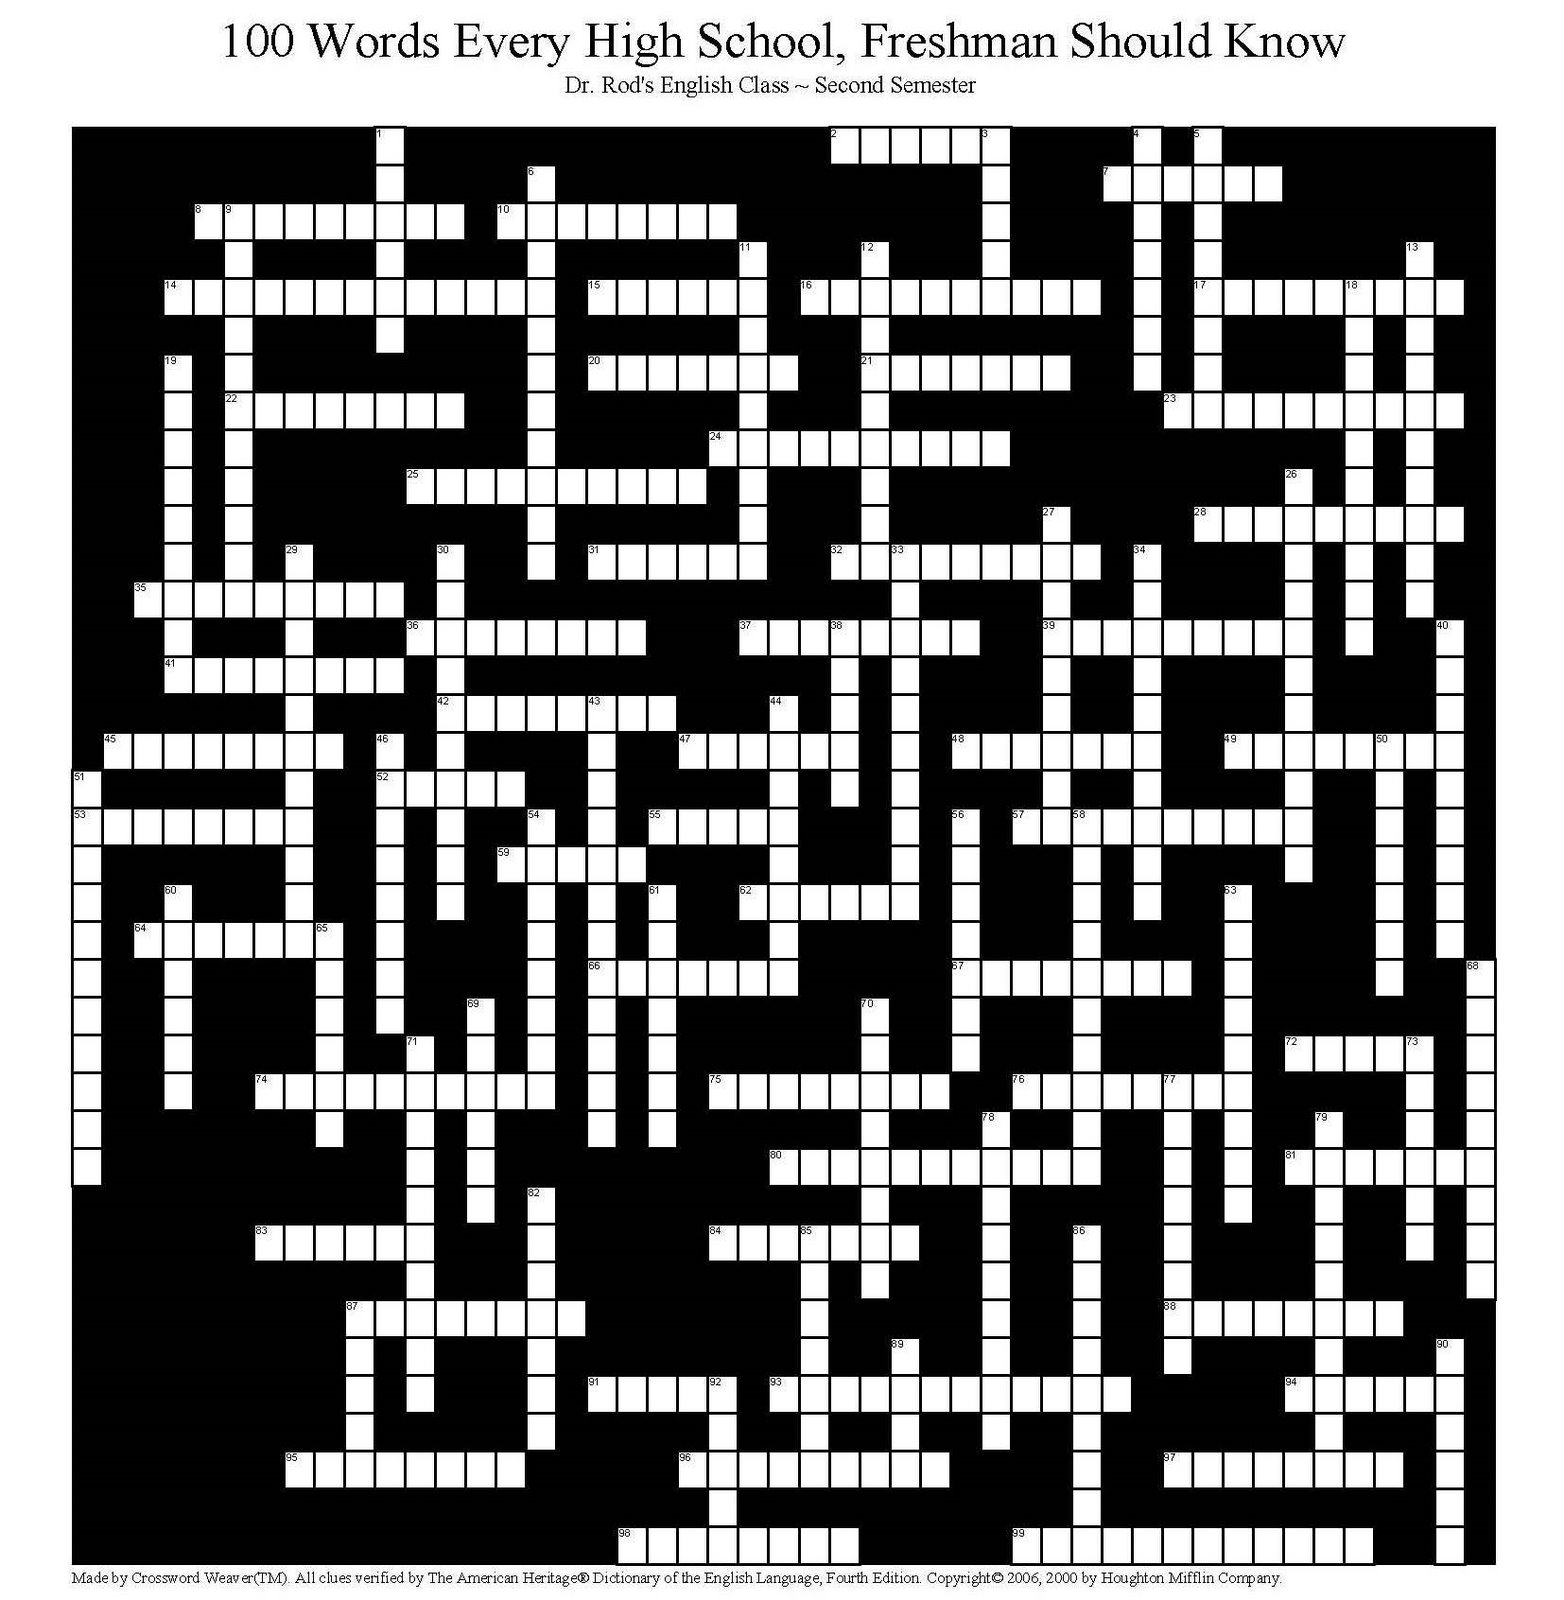 100 Words Every Freshman Should Know The Crossword